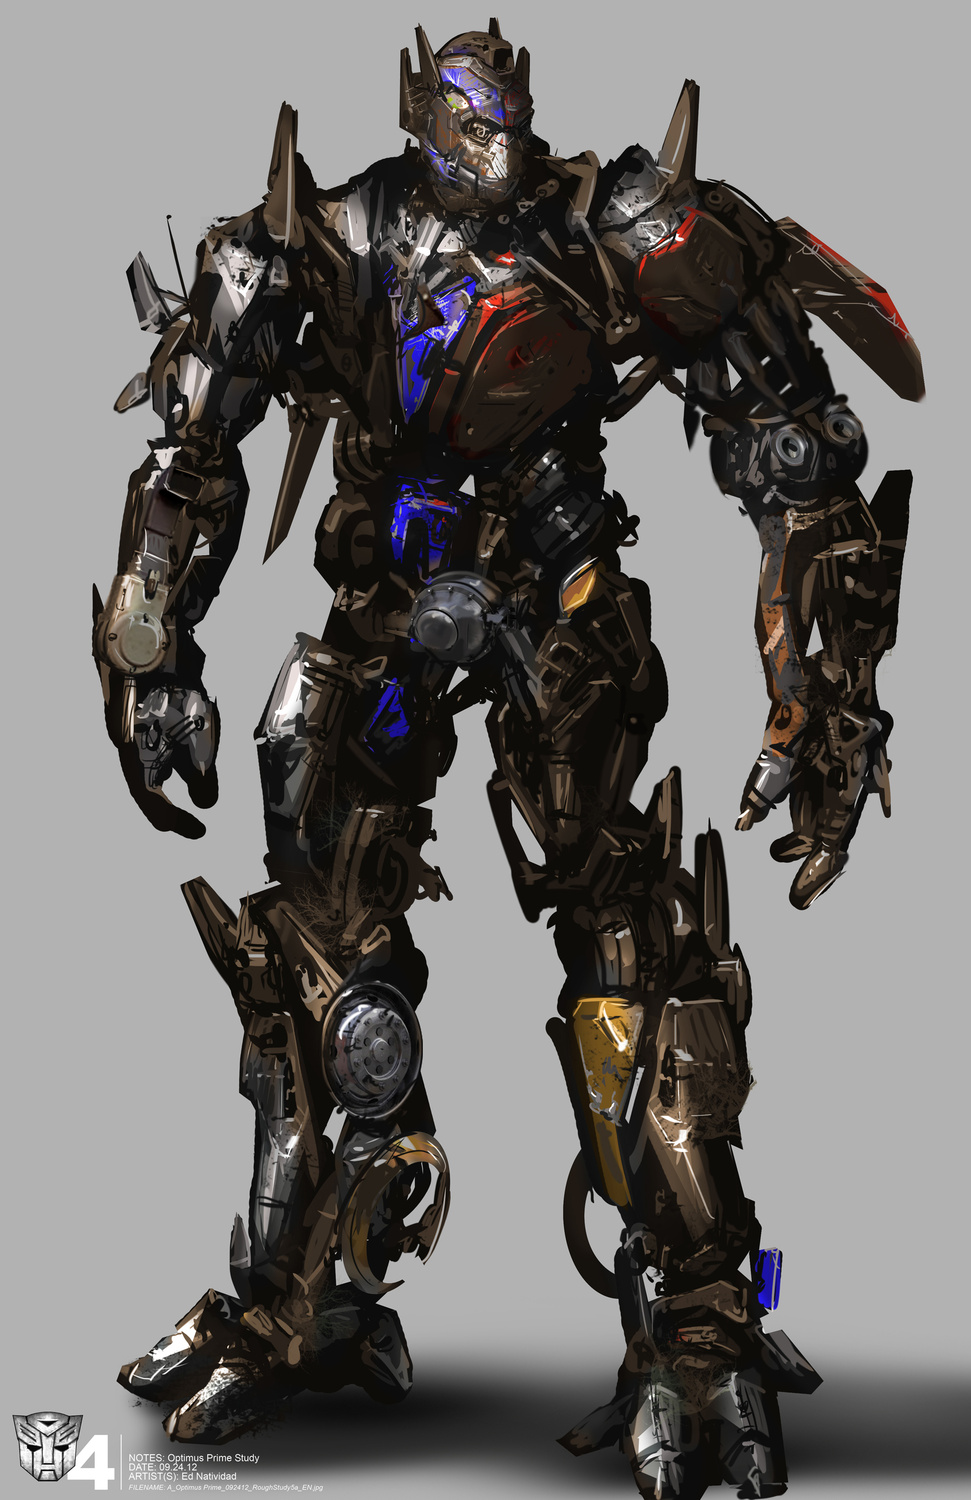 Transformers: Age of Extinction Concept Art by Ed Natividad